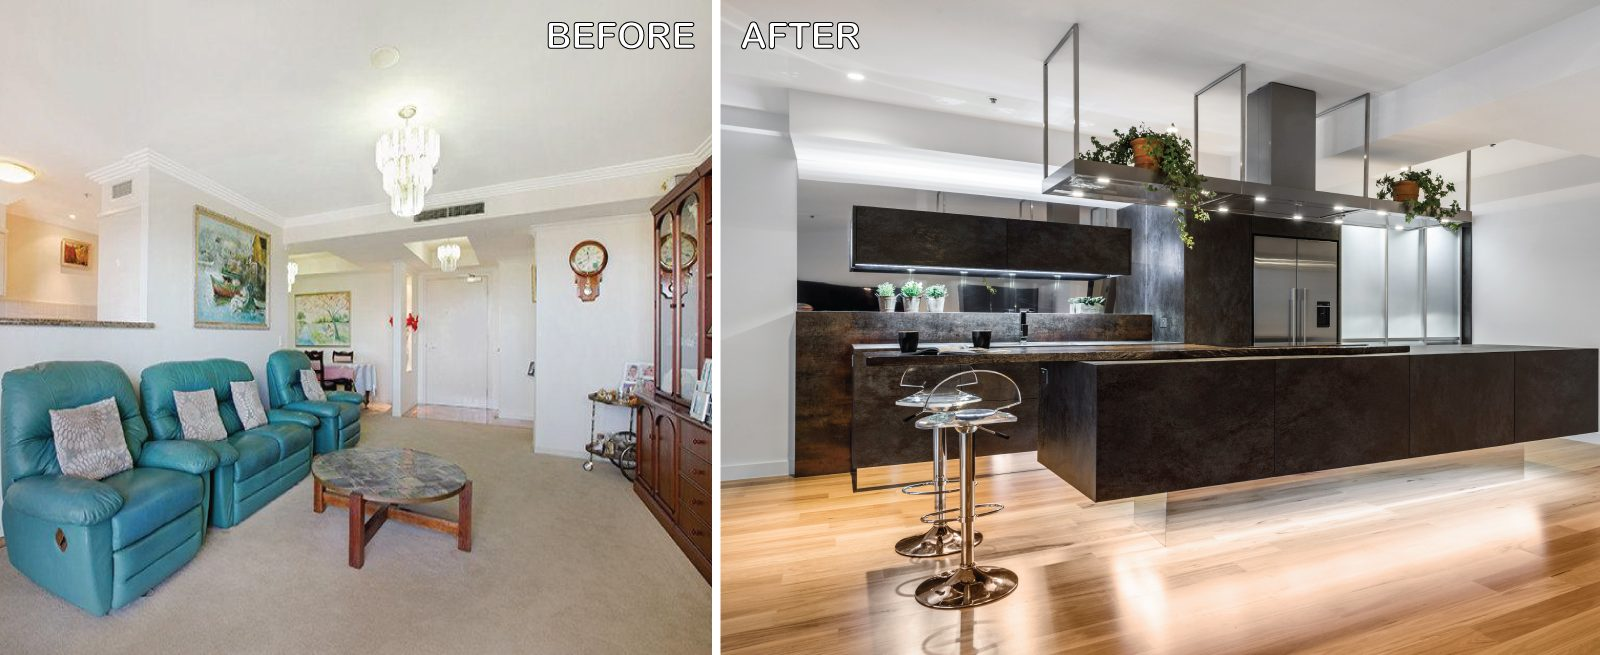 Before and After Kitchen Renovation Brisbane